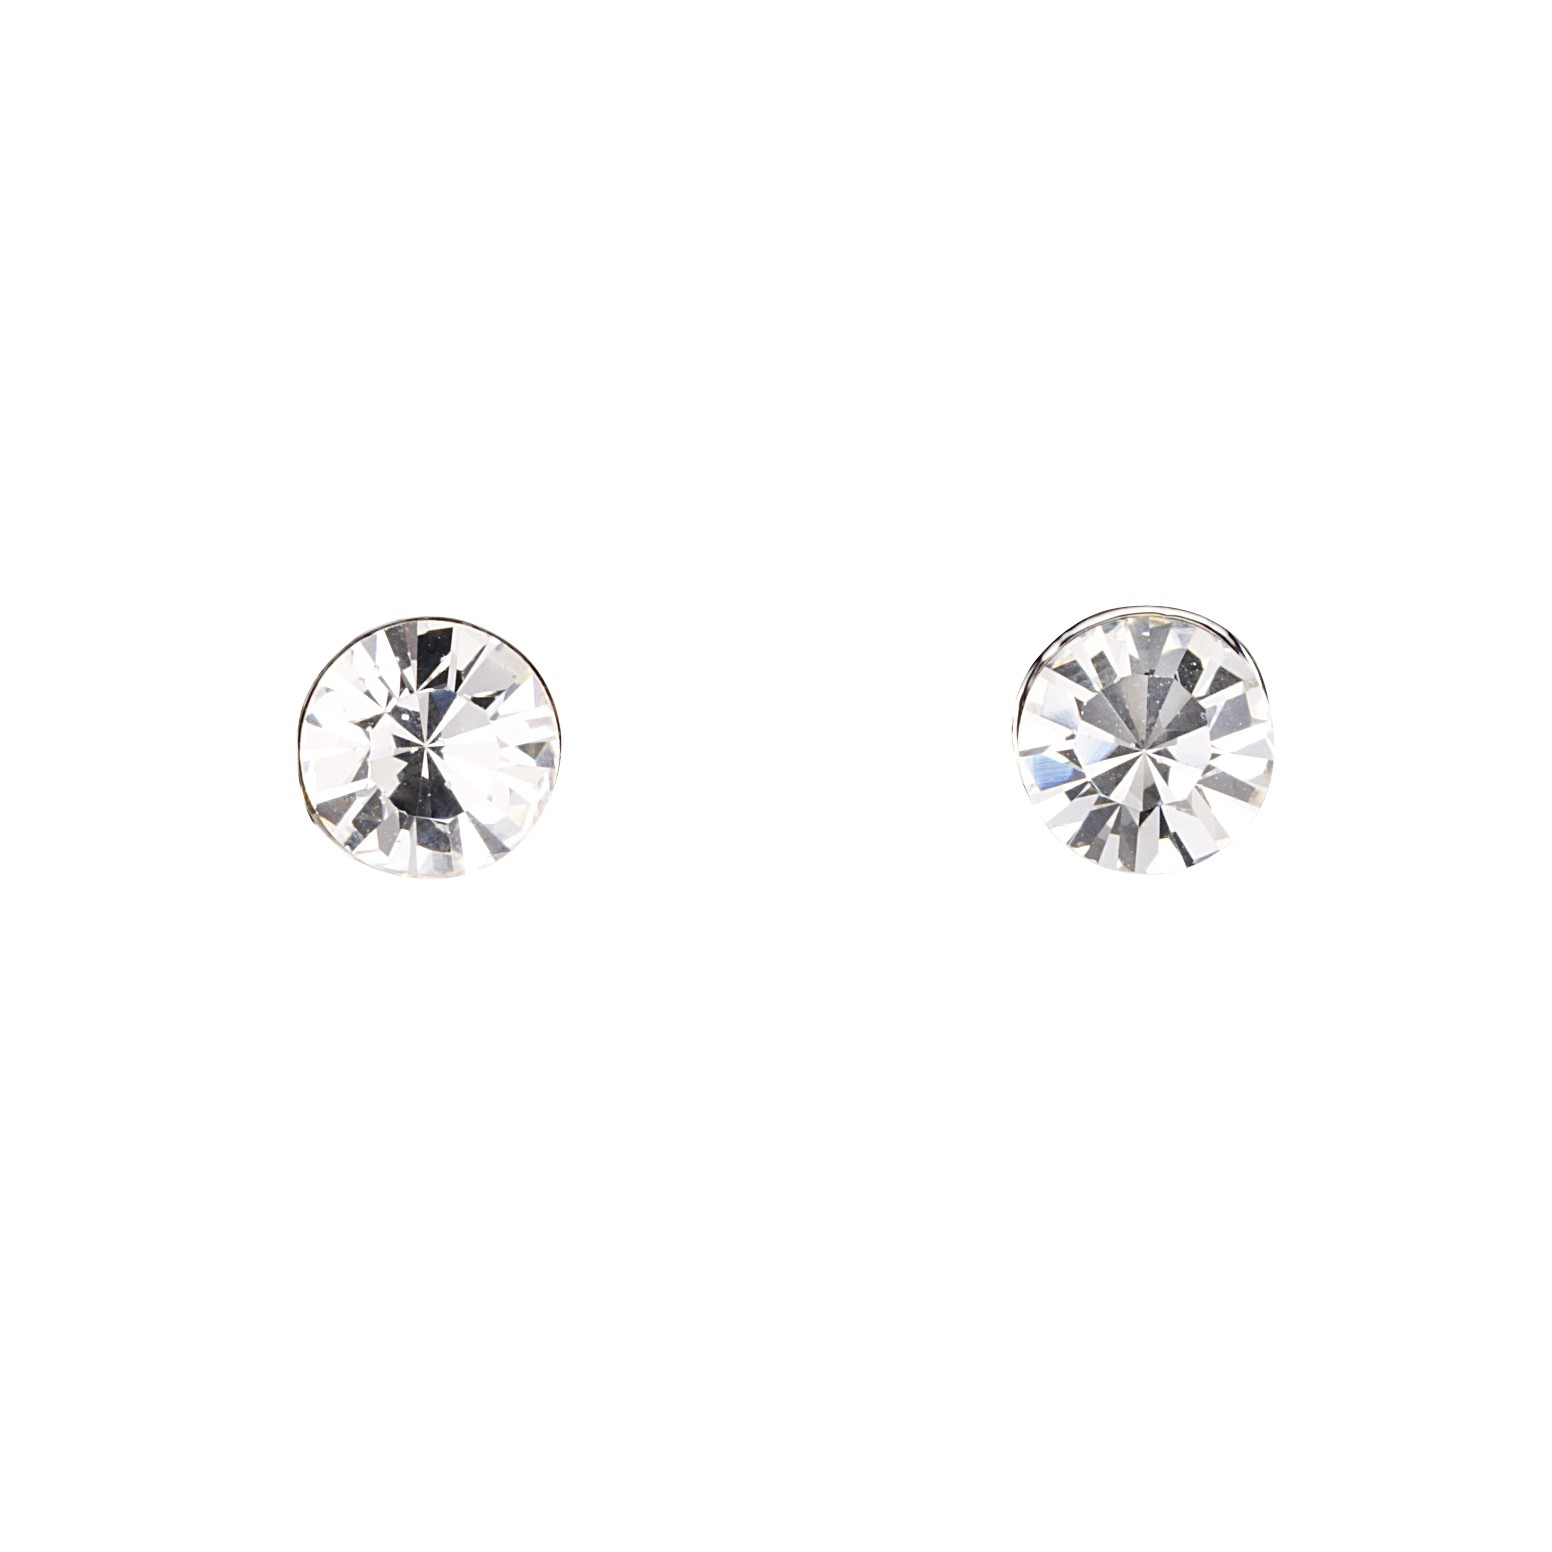 14f255b88 Gemini London Jewellery's Single 7mm Swarovski Stud Earrings - Made with Clear  White Swarovski Crystals,